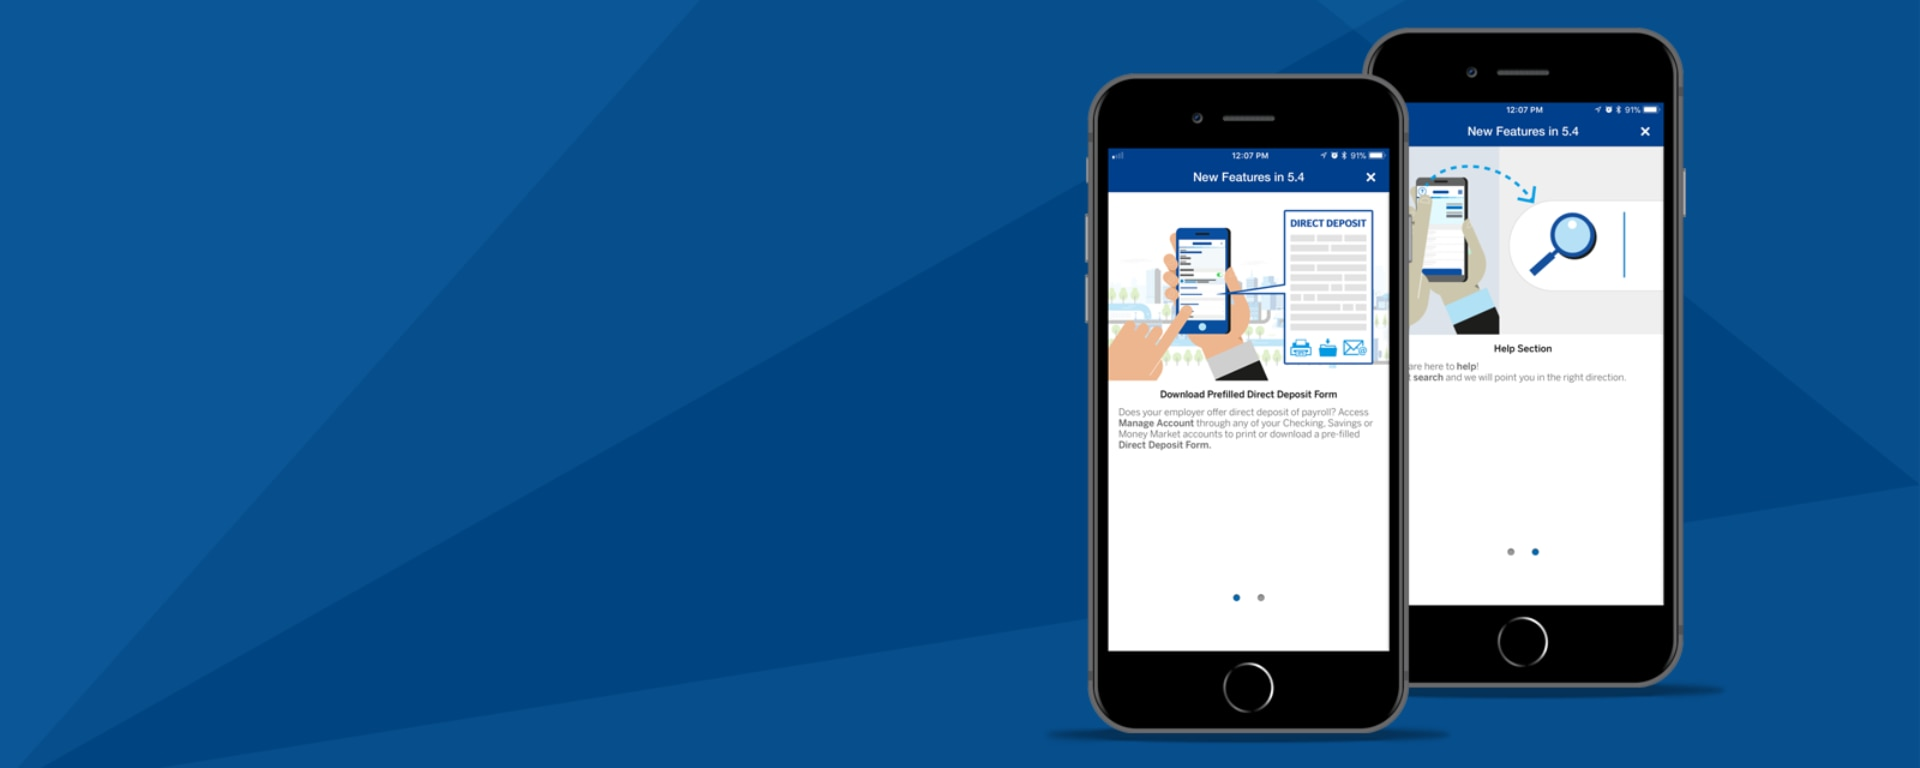 BBVA Compass Mobile Banking App version 5.4 with all new functionality search, direct deposit form and refreshed app icon released | BBVA